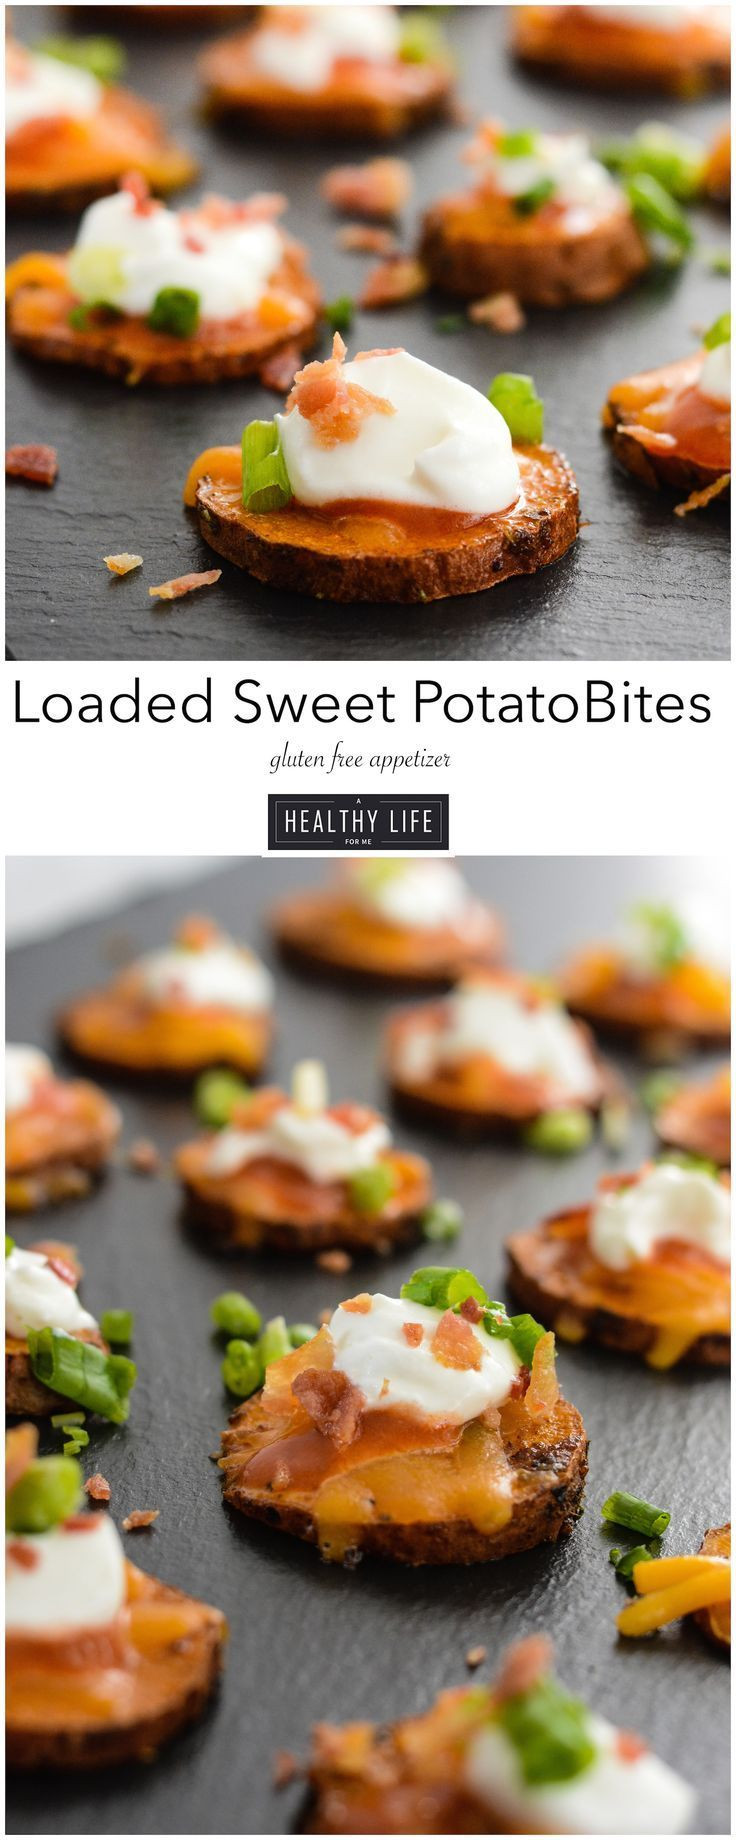 Light Thanksgiving Appetizers  Loaded Sweet Potato Bites Recipe